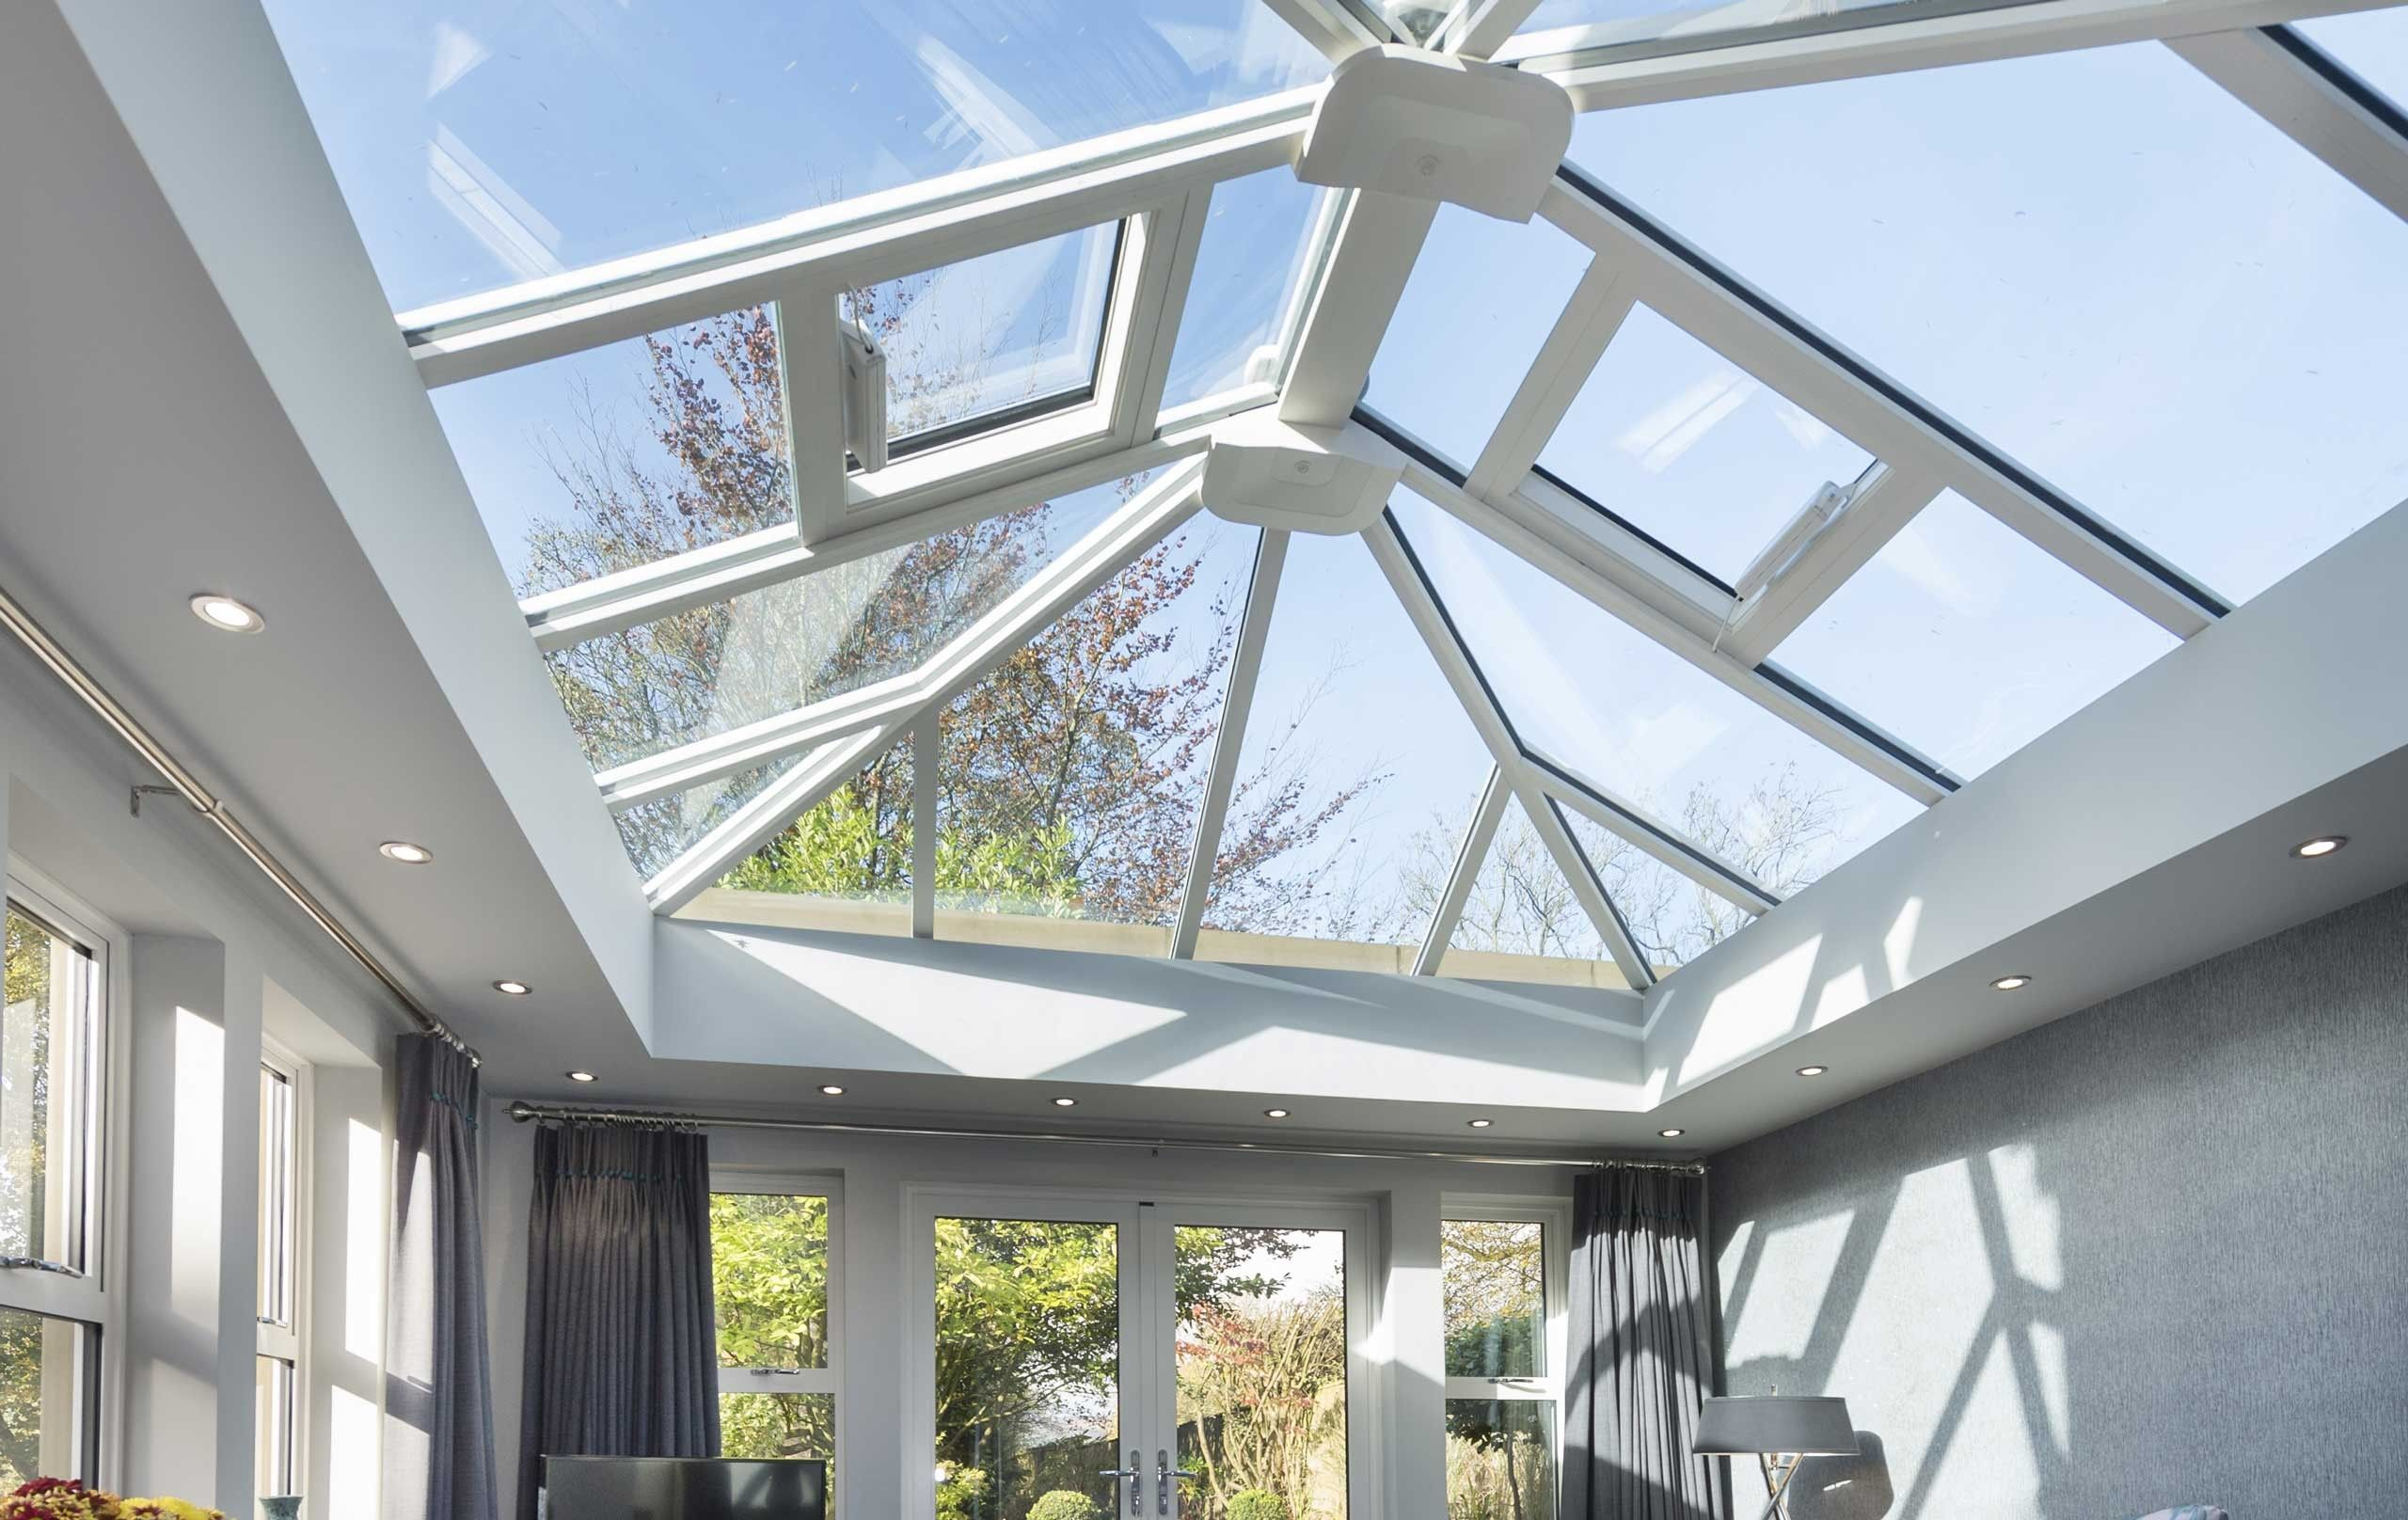 An Ultraframe Glass Conservatory Roof In 2020 Shed Roof Design Roof Design Glass Conservatory Roof